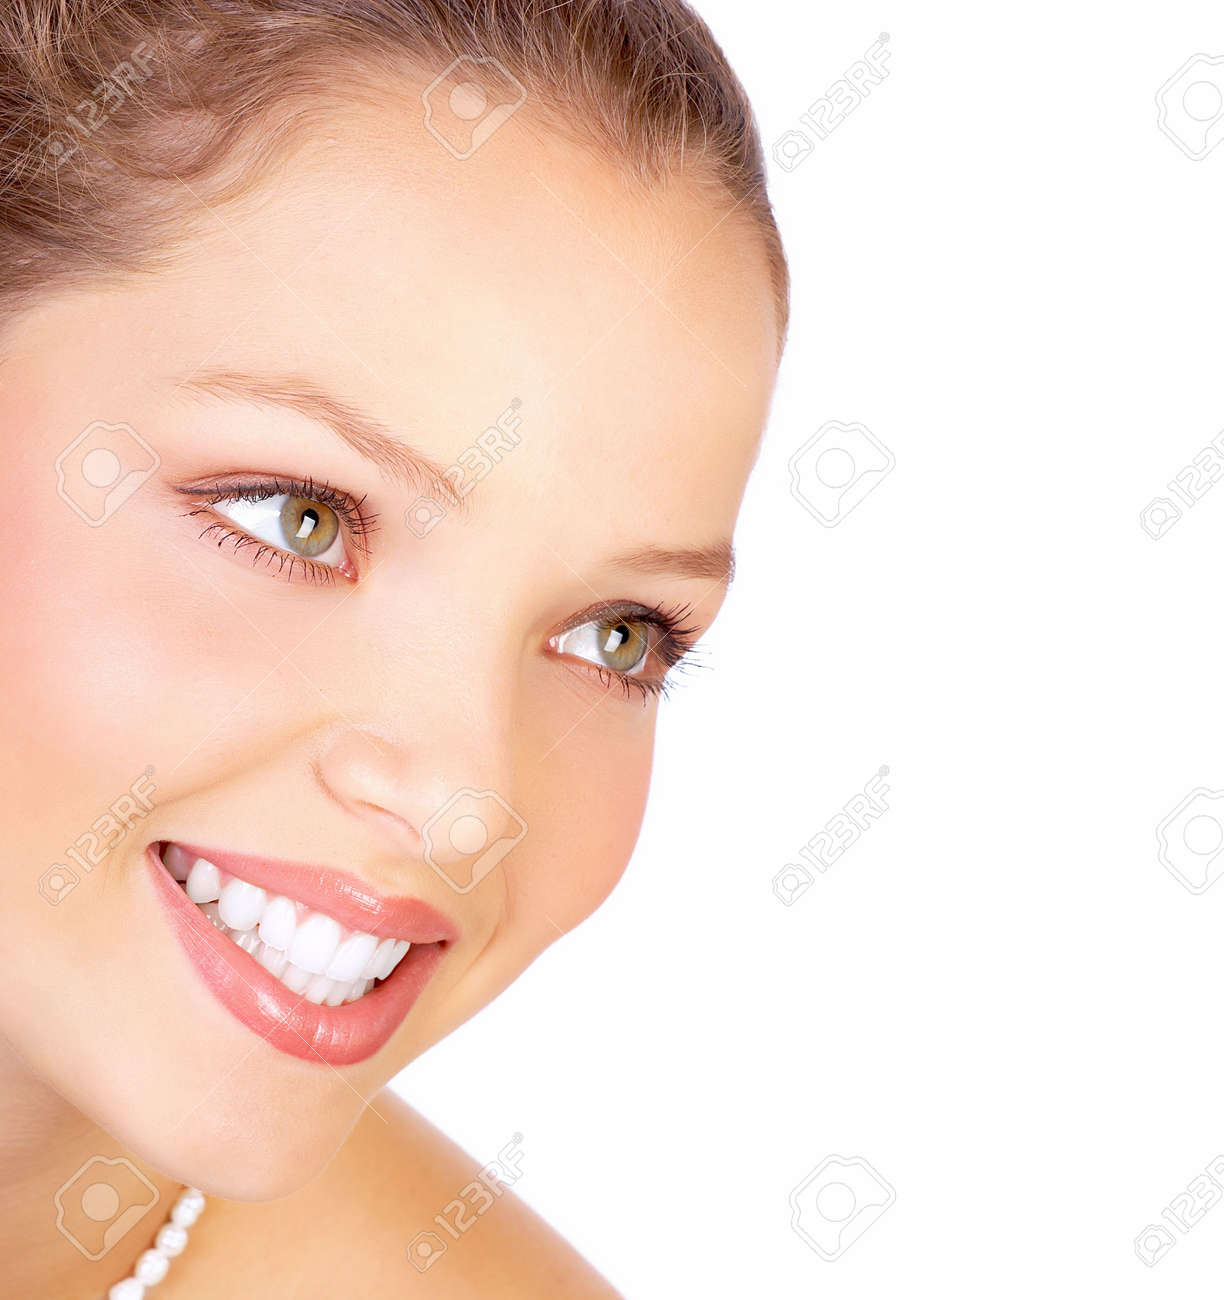 Beautiful young smiling woman. Isolated over white  background Stock Photo - 4939464